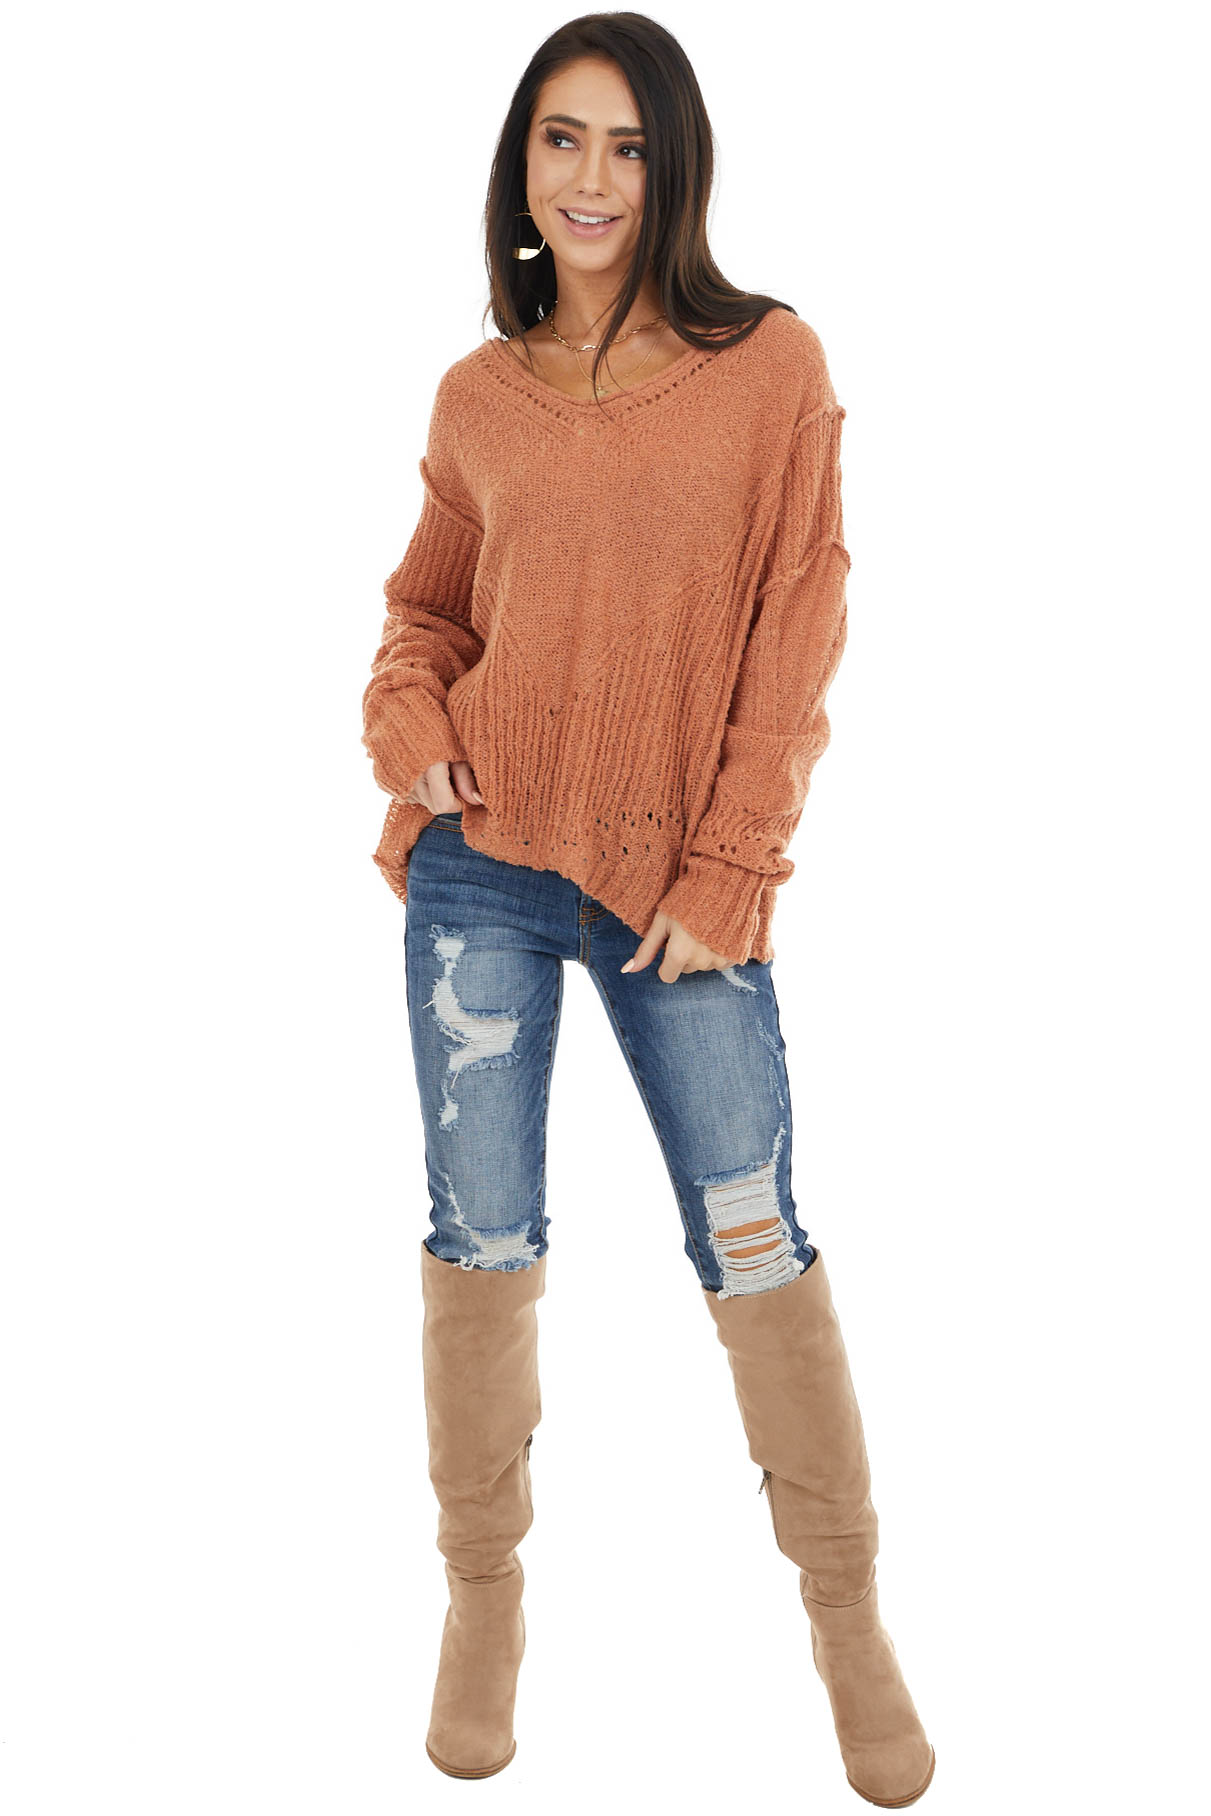 Tawny Textured Knit Sweater with Cutout Details